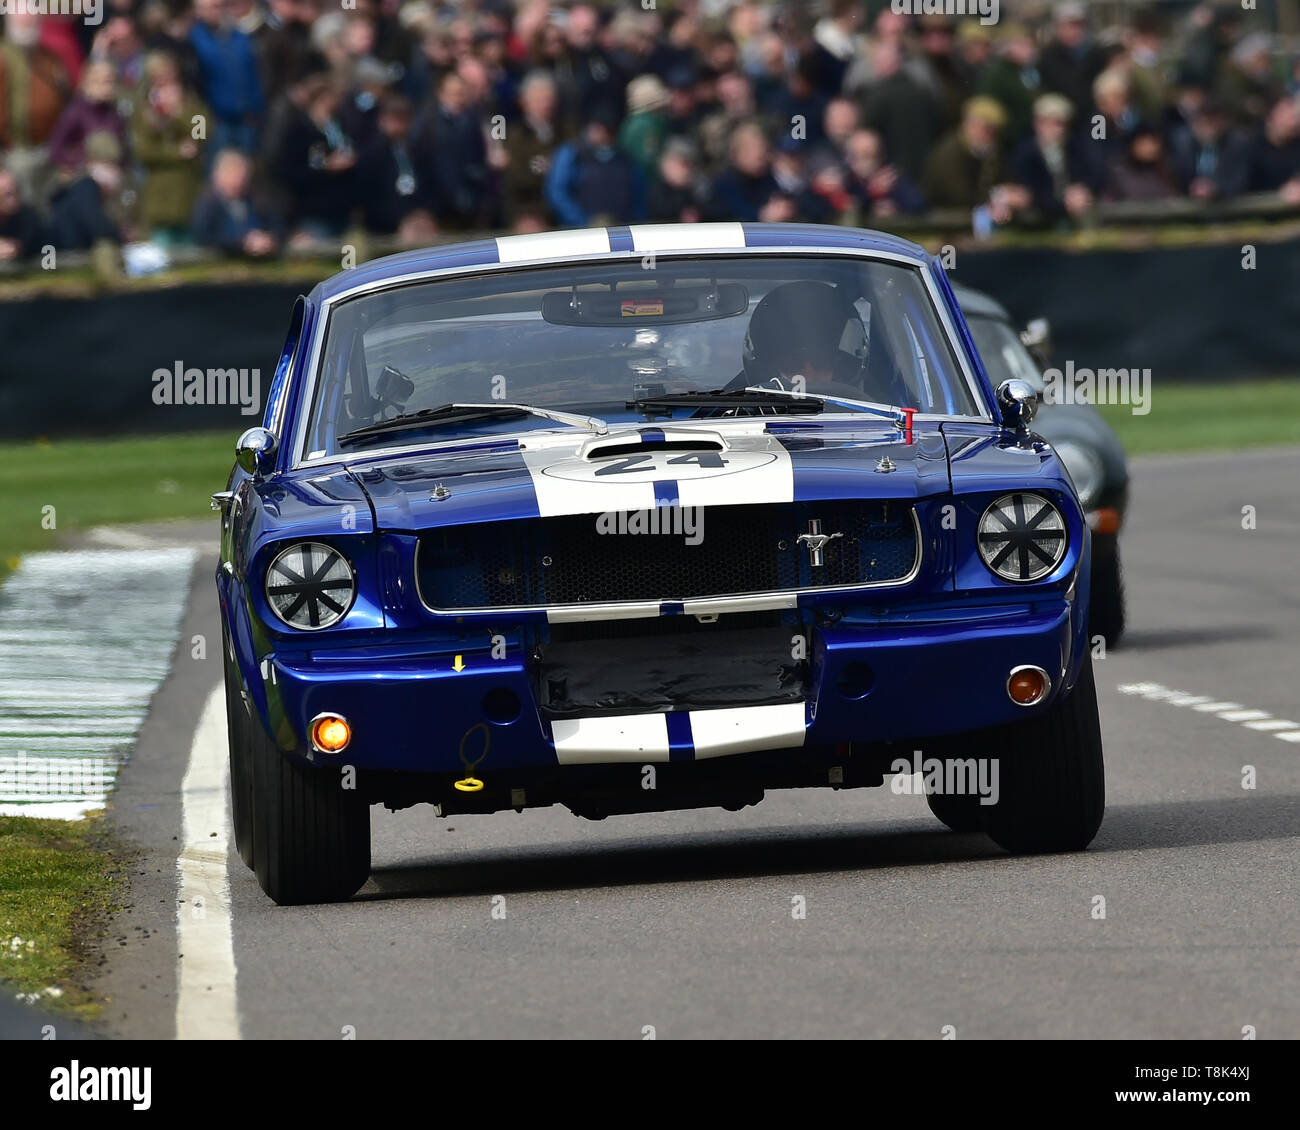 Don Dimitriadis, Chad Parrish, Ford Shelby Mustang GT350, Graham Hill Trophy, Closed cockpit GT cars, Prototype cars, Spirit of the RAC TT Races 1960- - Stock Image